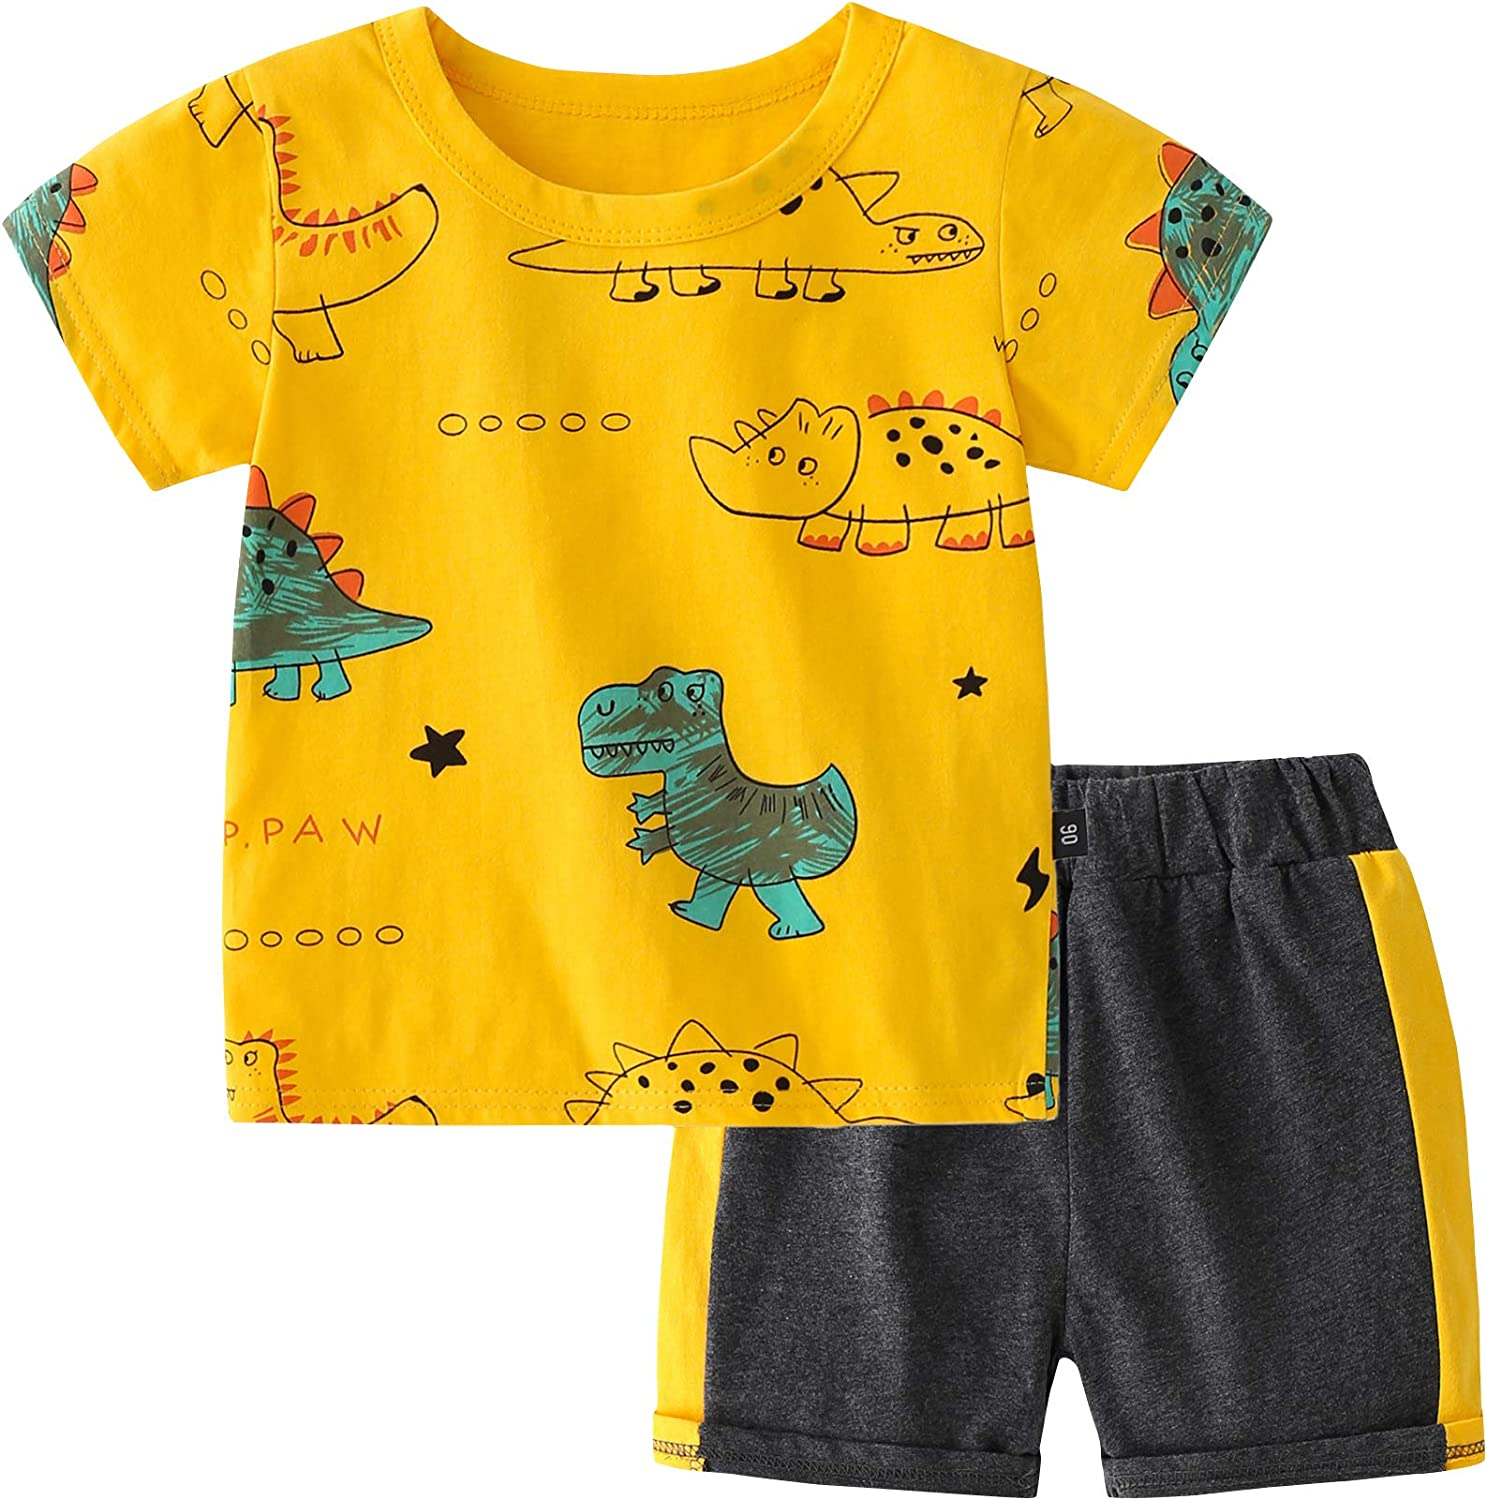 AMOUR TIME Toddler Baby Boy Summer Clothes Outfits Short Sleeve Dinosaur Print Shirt Shorts Sets 2Pcs Little Boy Clothing